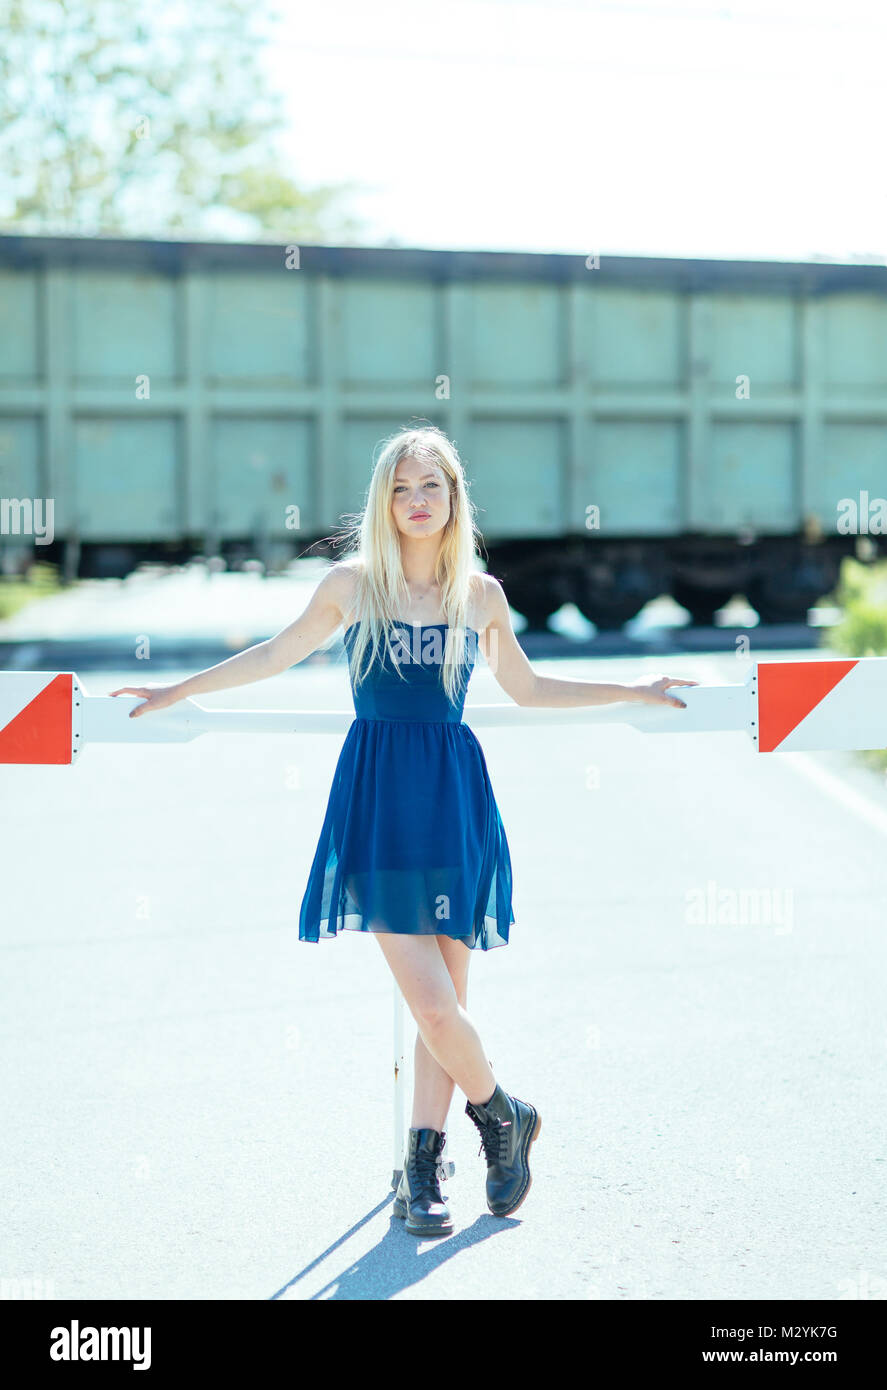 Young blonde woman waiting on automated level crossing with down barriers for oncoming train - Stock Image